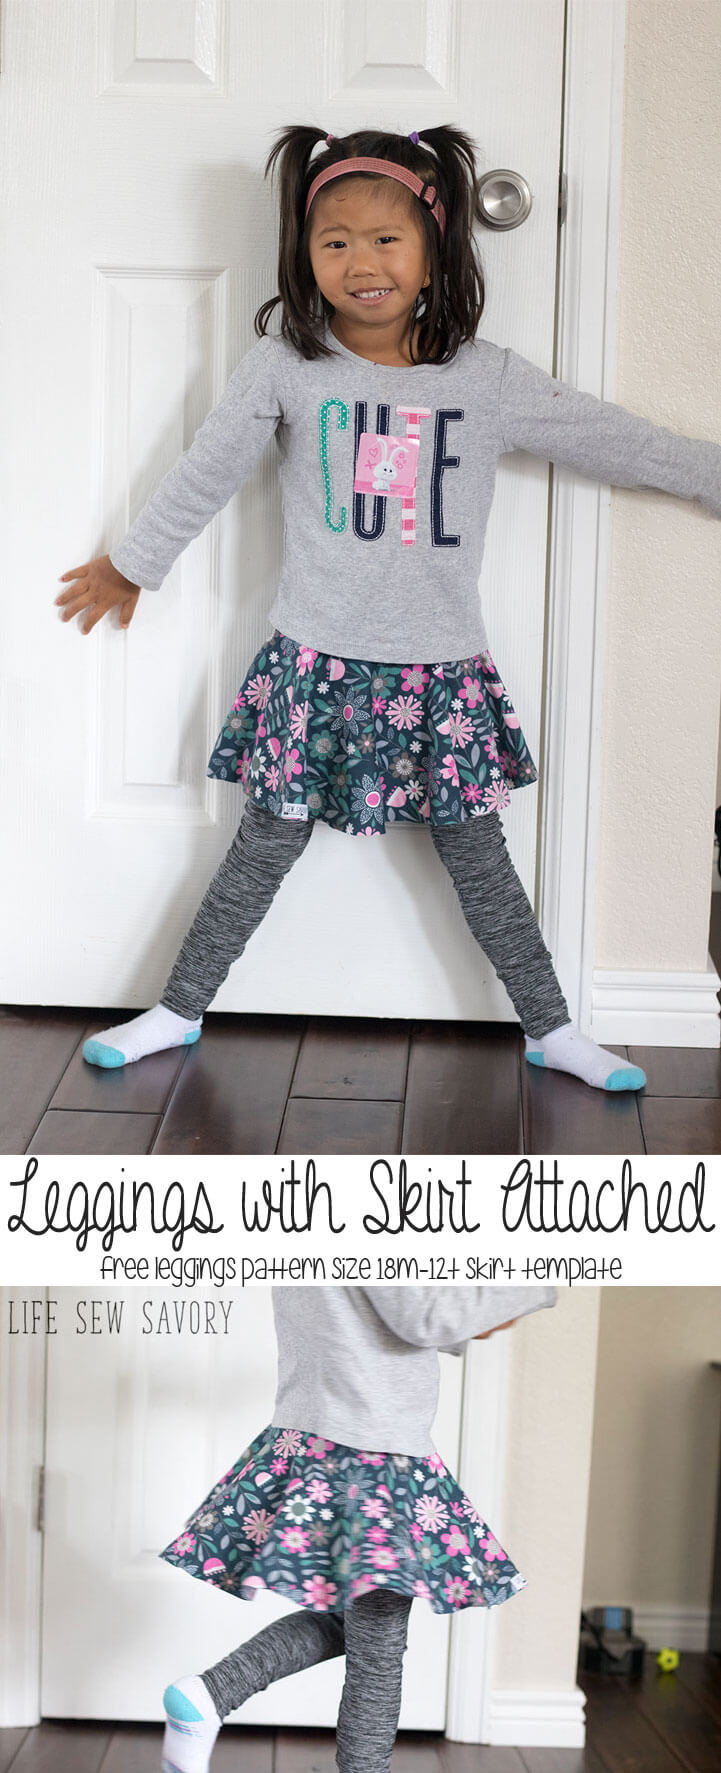 Free Knitting Patterns For Teens Free Classic Legging Pattern For Girls 18 Mths 12 Years Life Sew